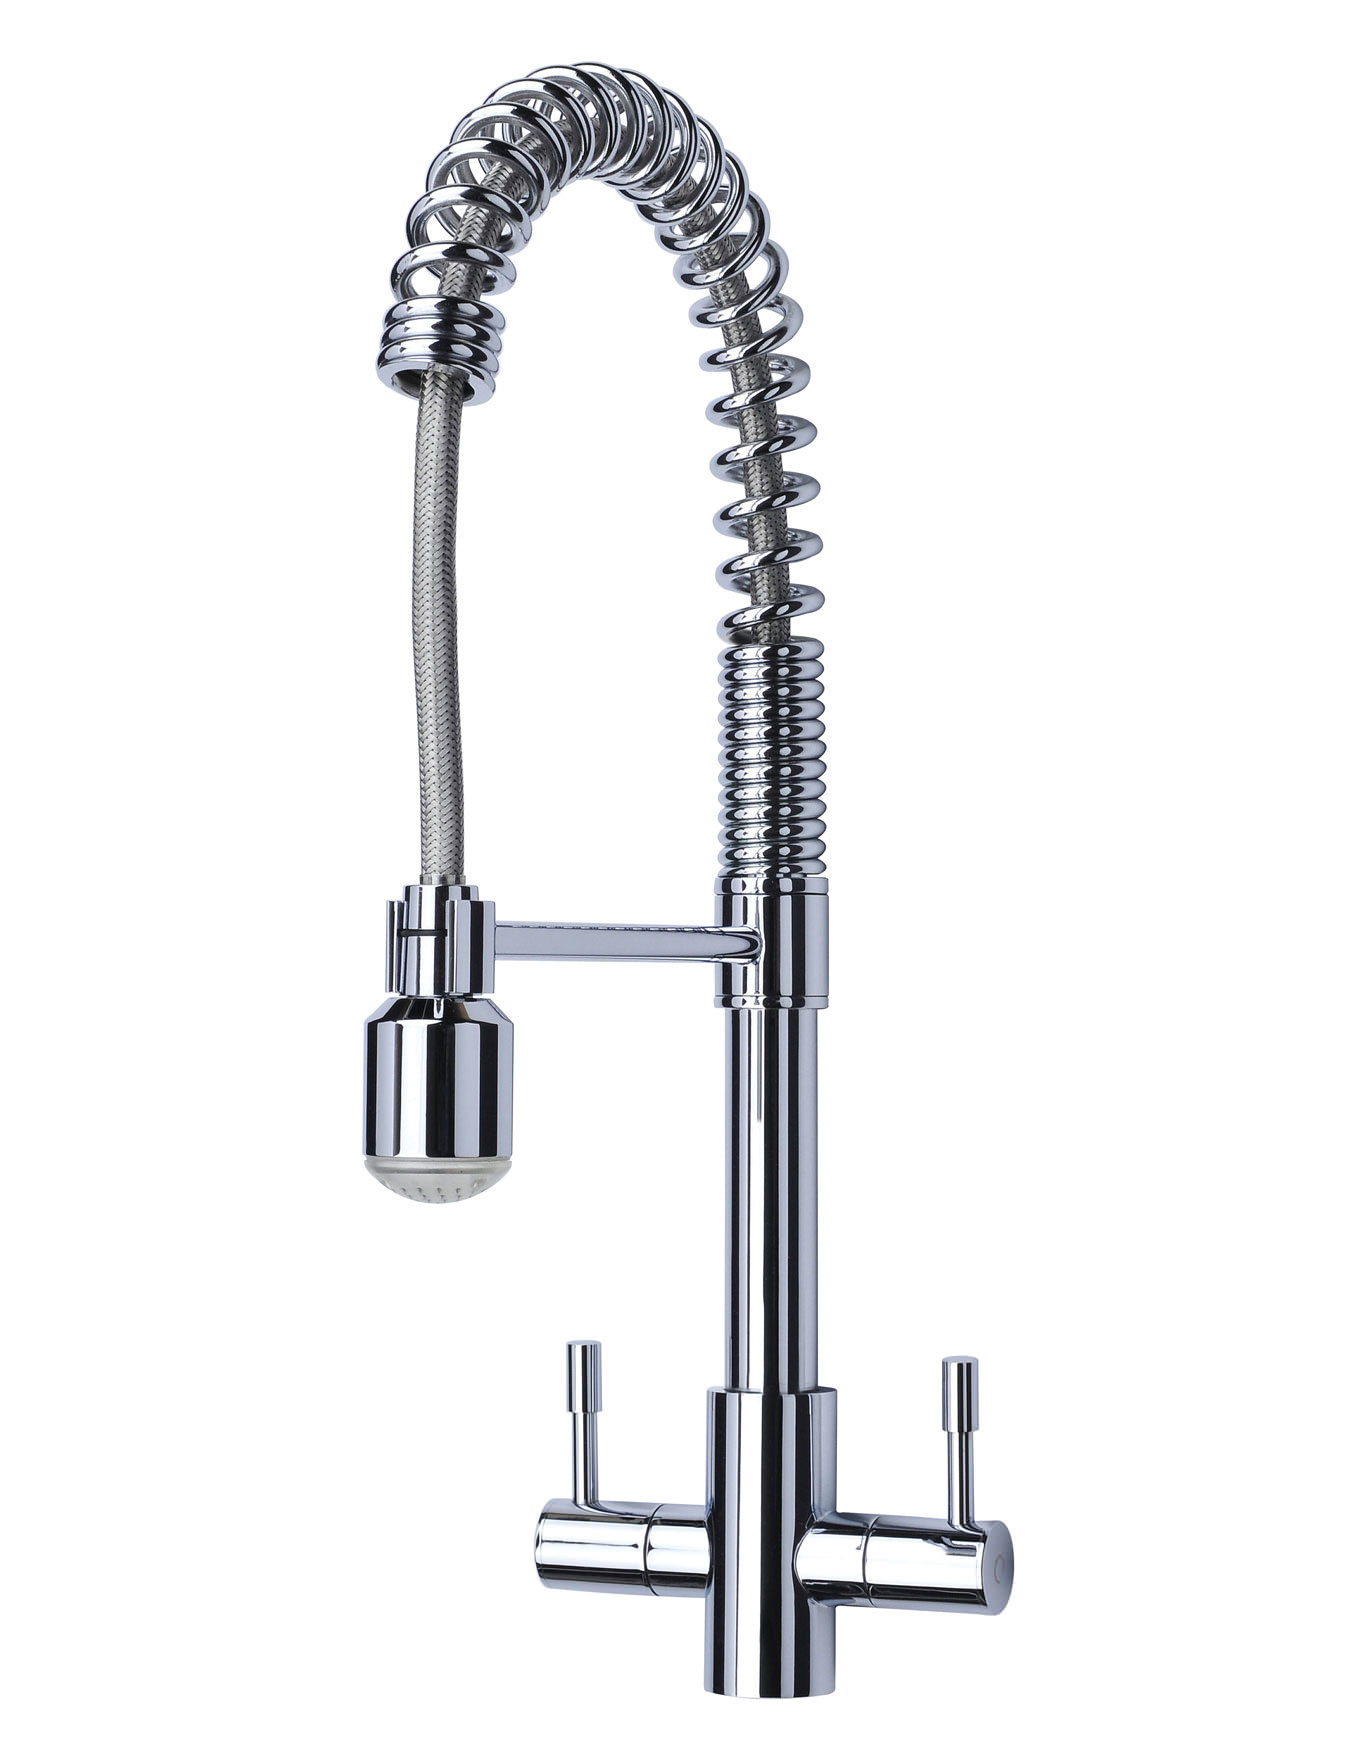 Mayfair Groove Kitchen Sink Mixer Tap Chrome - KIT173